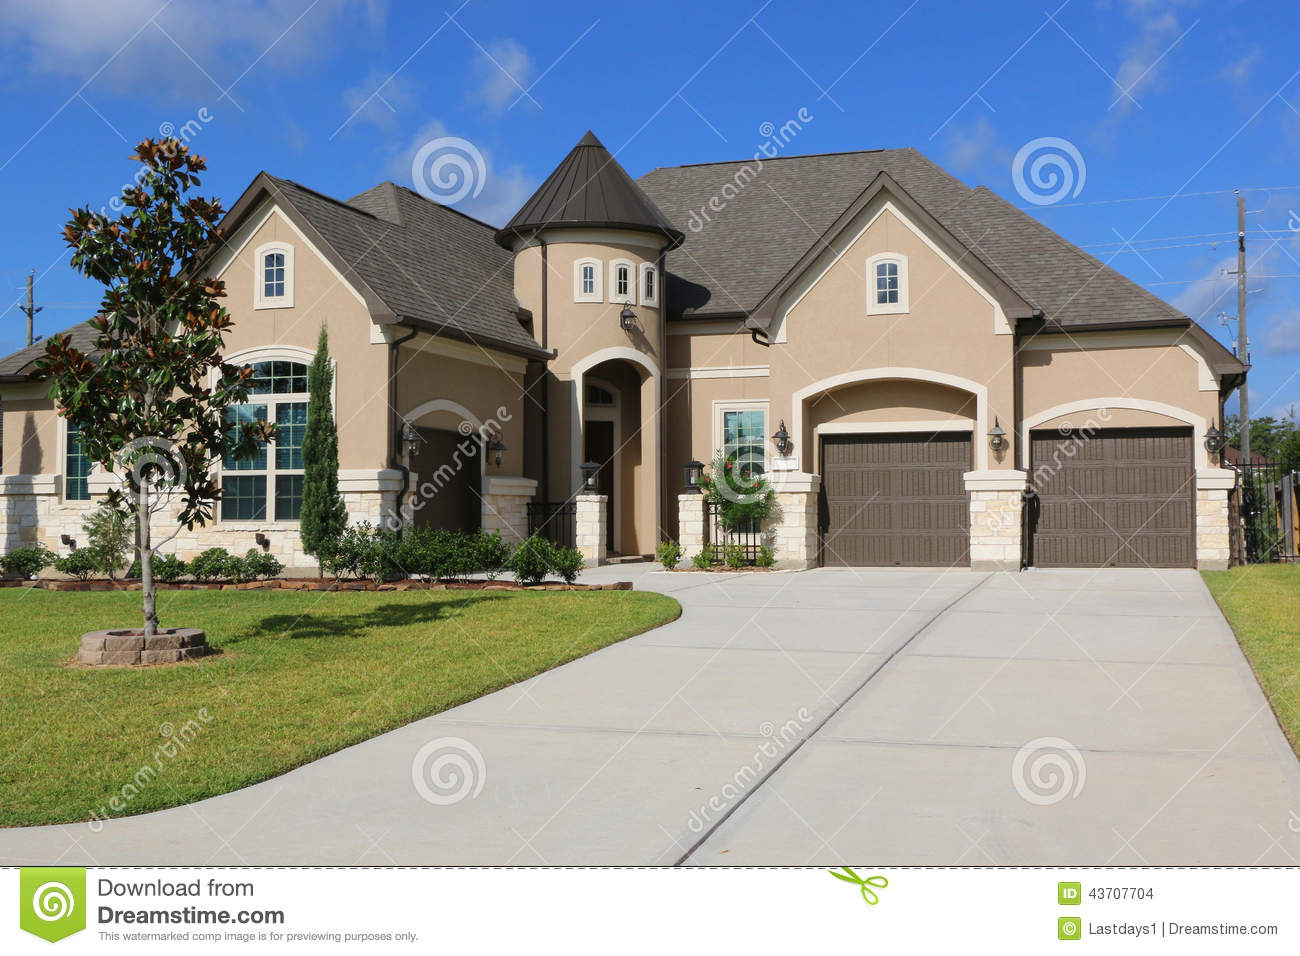 Million dollar homes stock photo image 43707704 for Very beautiful house